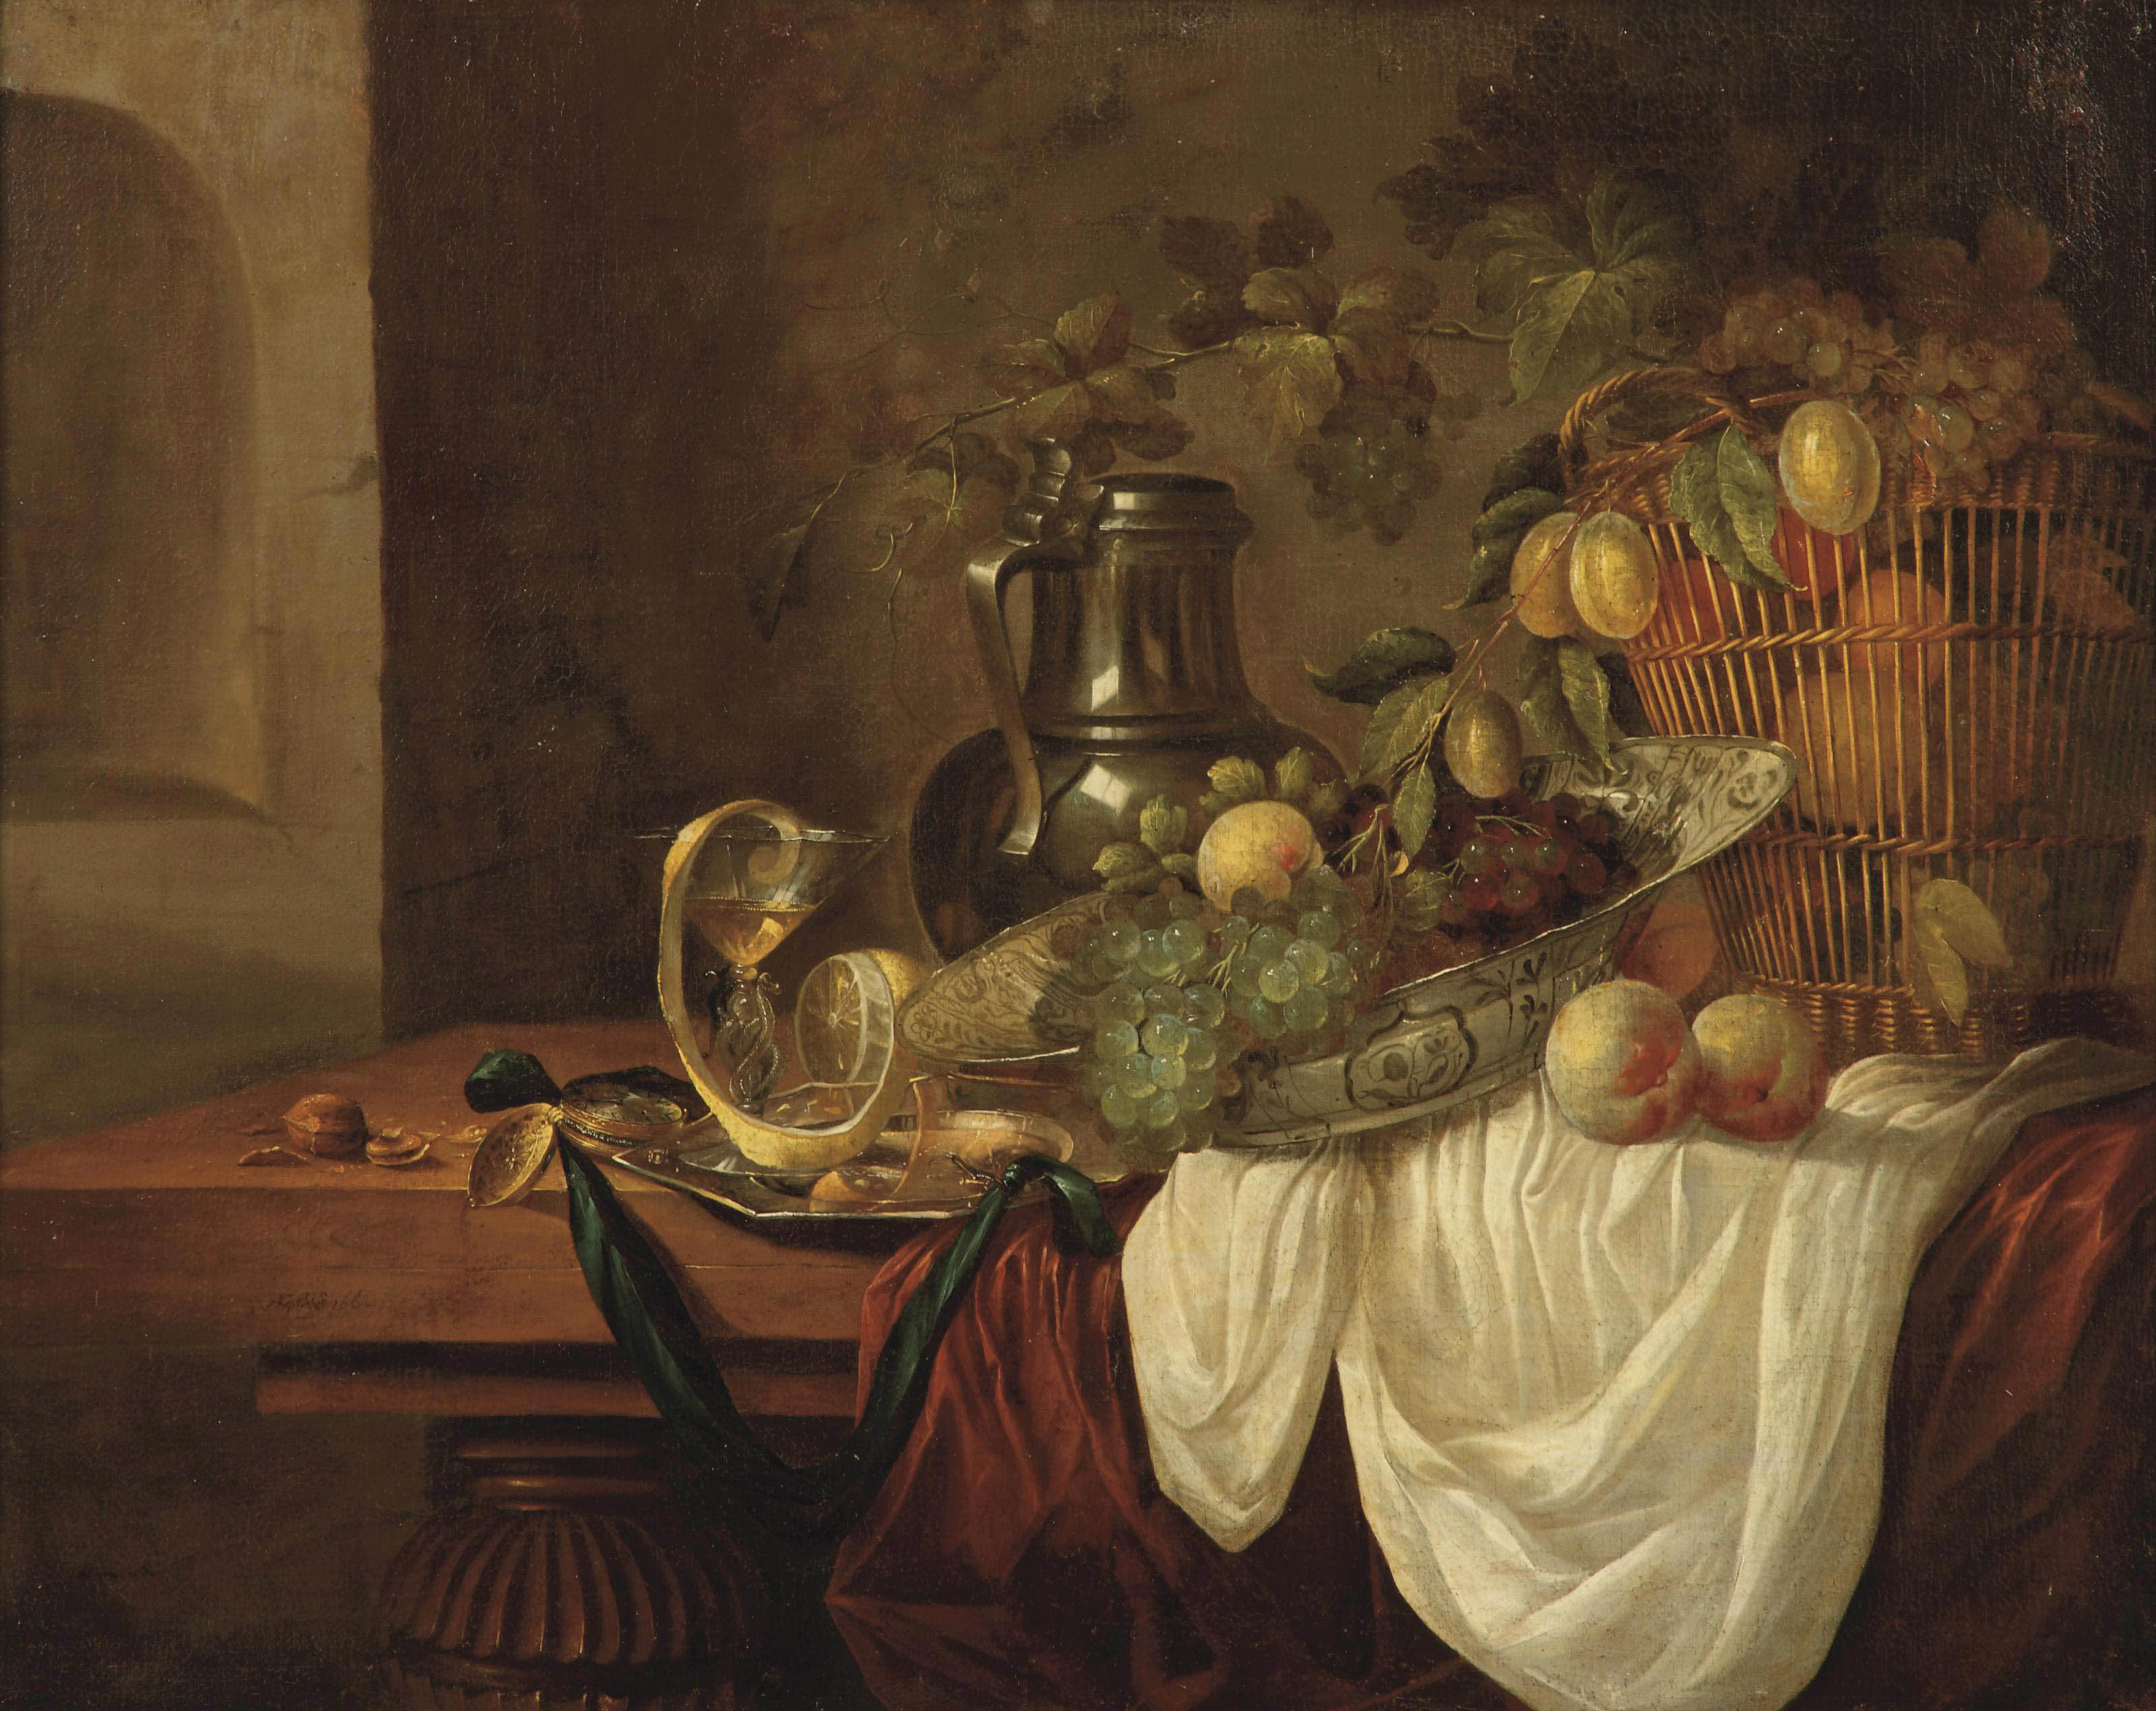 Grapes, peaches and plums in a 'wan-li kraak' porcelain dish and in a wicker basket, a pewter jug and a silver plate, all on a partially draped table in an interior